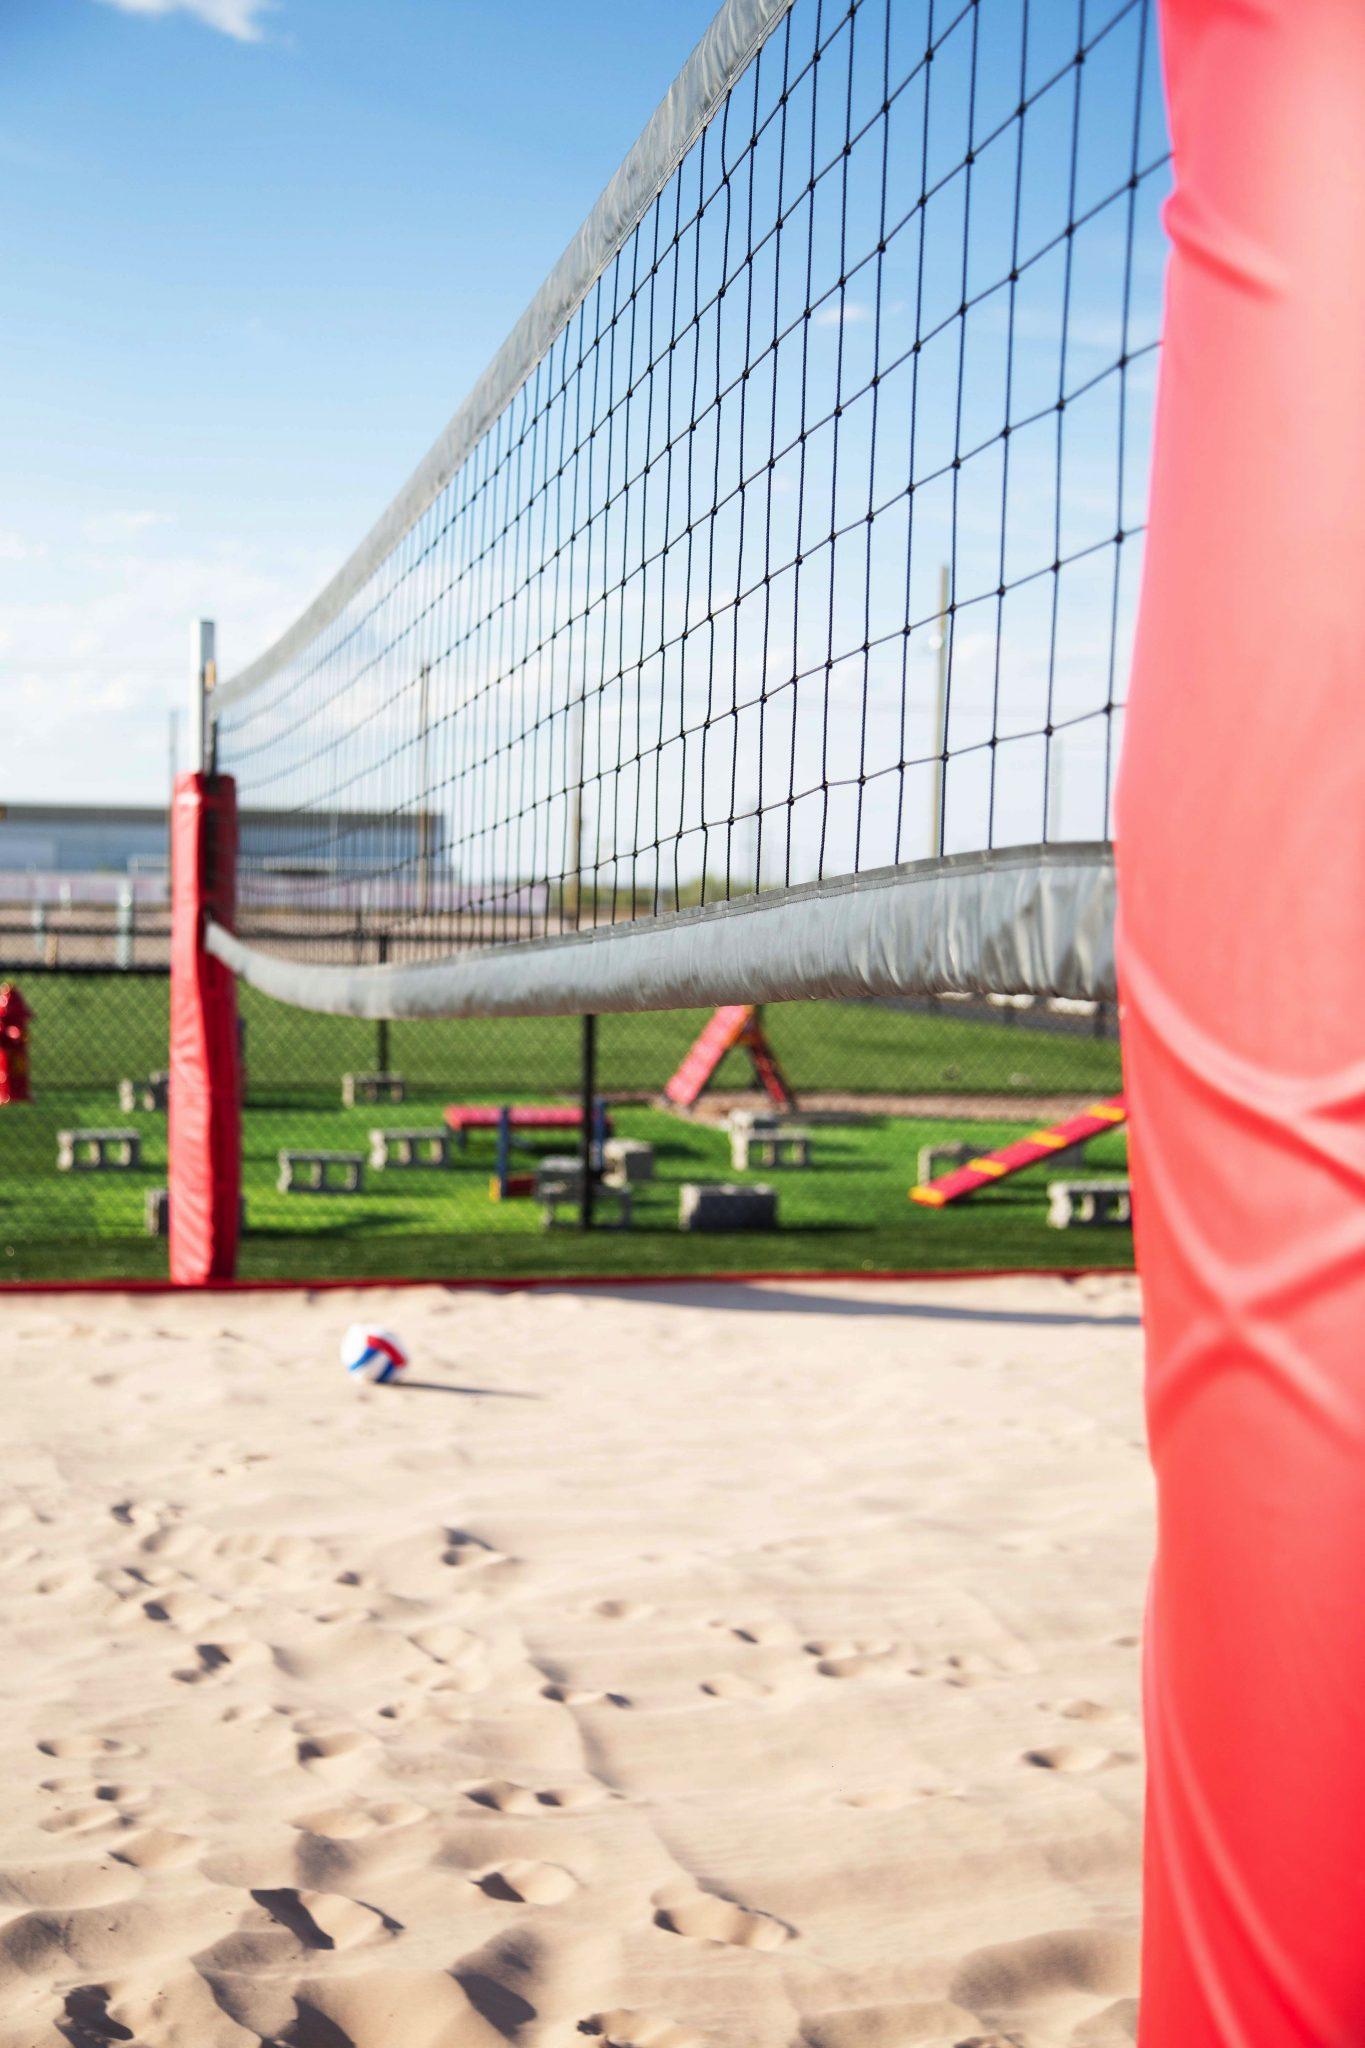 Park Place RV Park Odessa, TX 79766 - volleyball